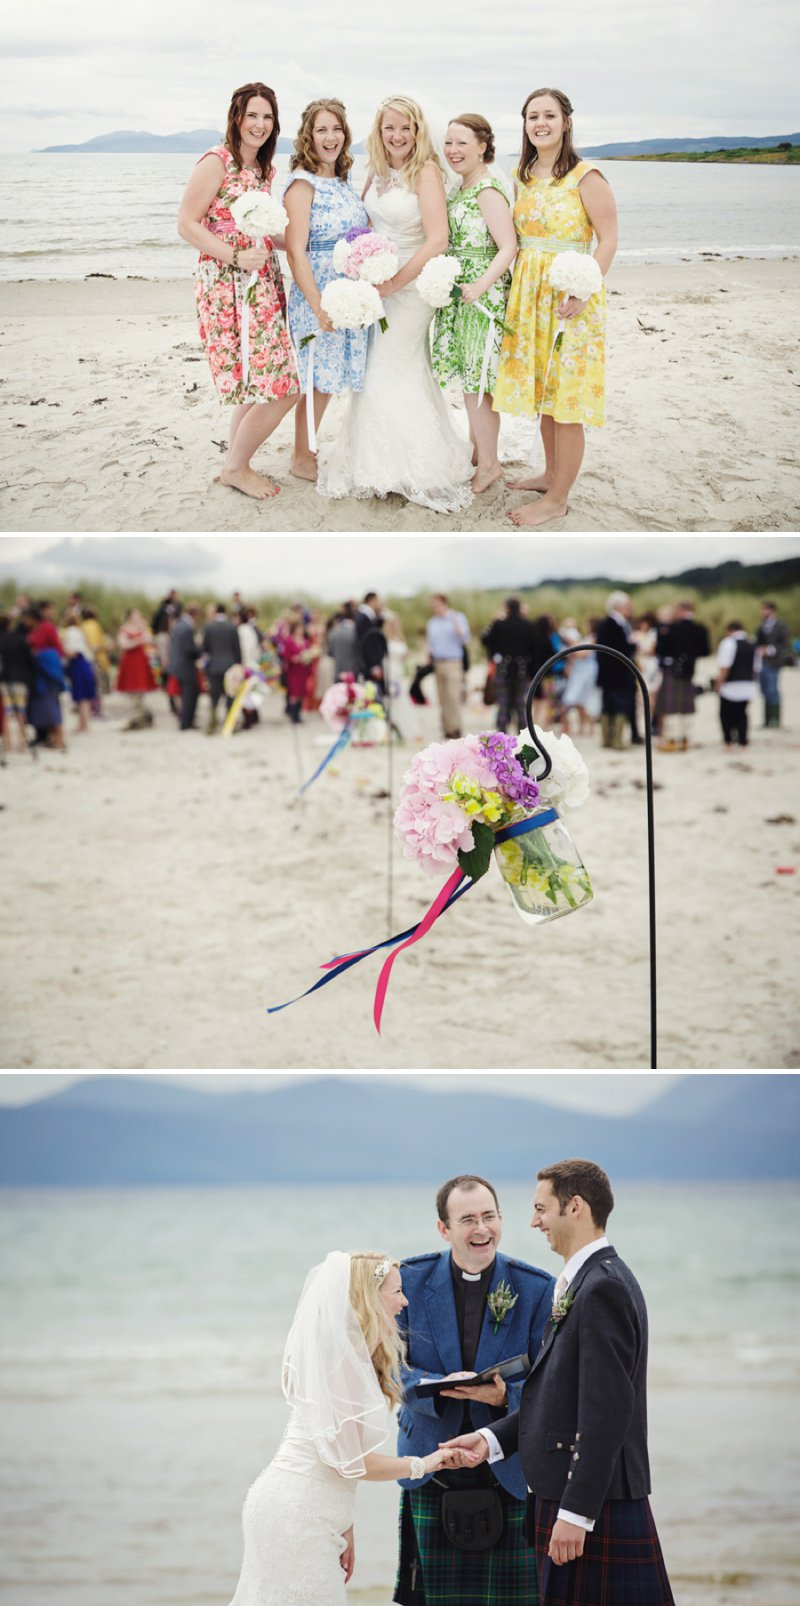 A Rustic Scottish Beach Wedding With Bride In Justin